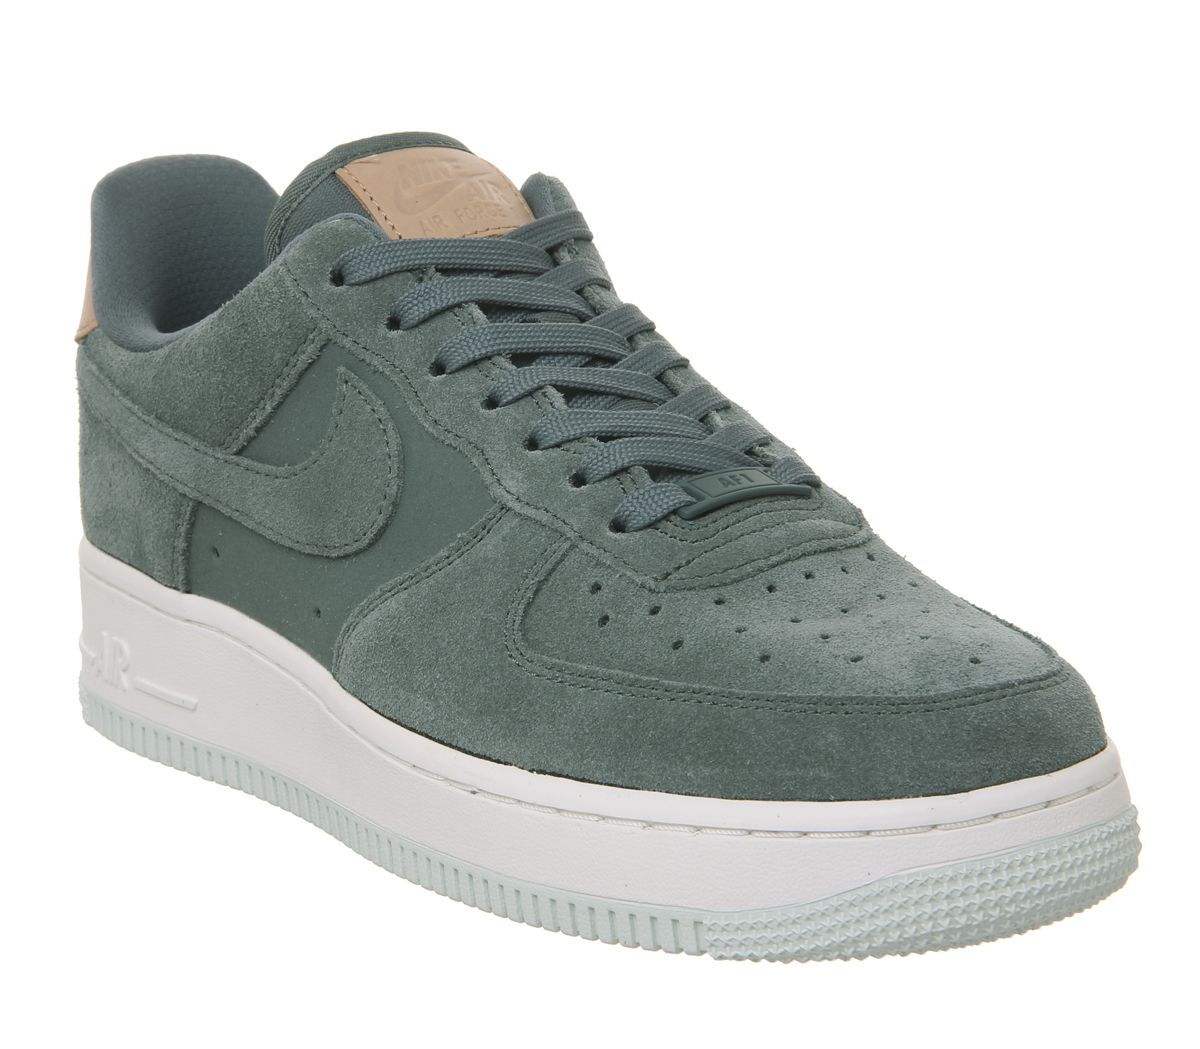 new product df23c acc39 Nike Air Force 1 07 Trainers Hasta Summit White Vachetta Tan - Hers ...